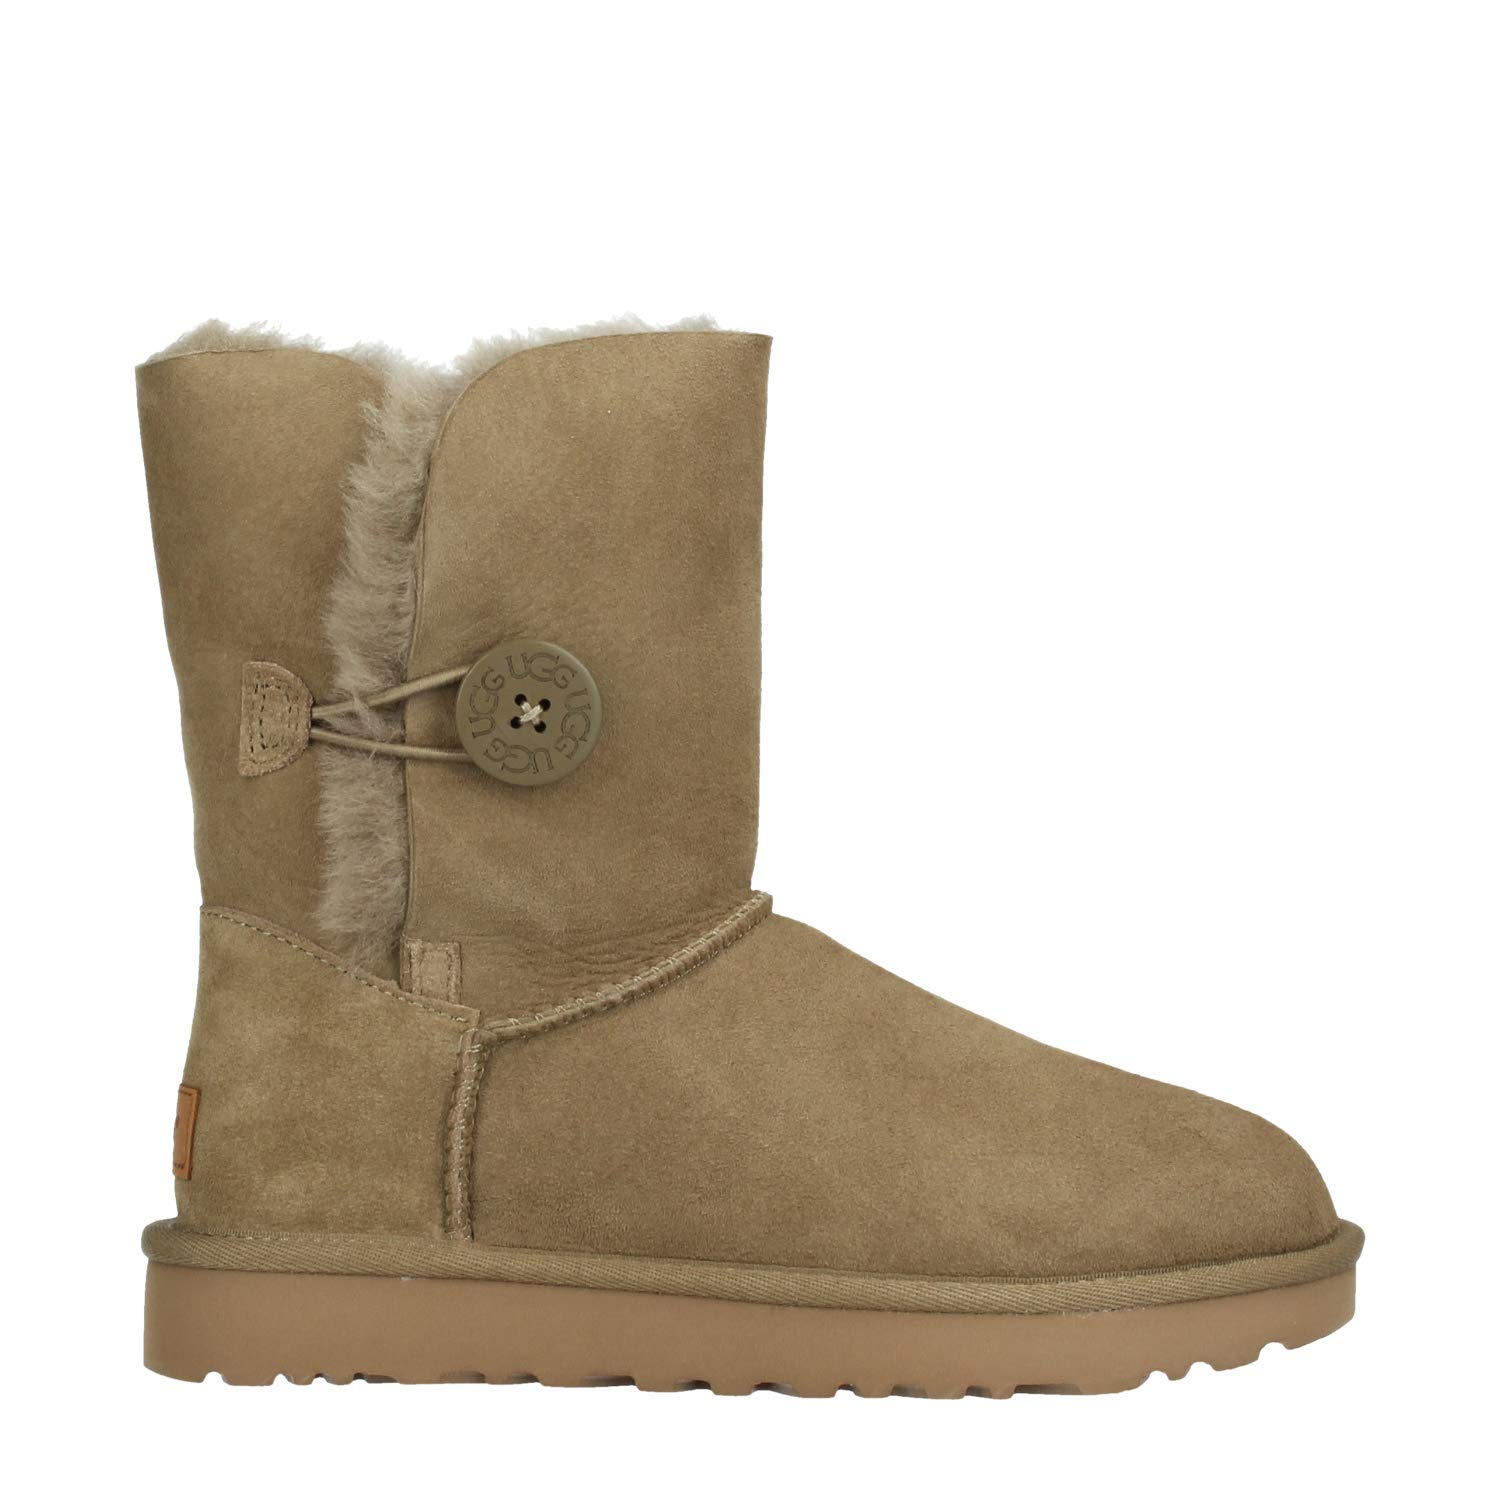 664a298f238 Ugg Australia Bailey Button, Women's Boots